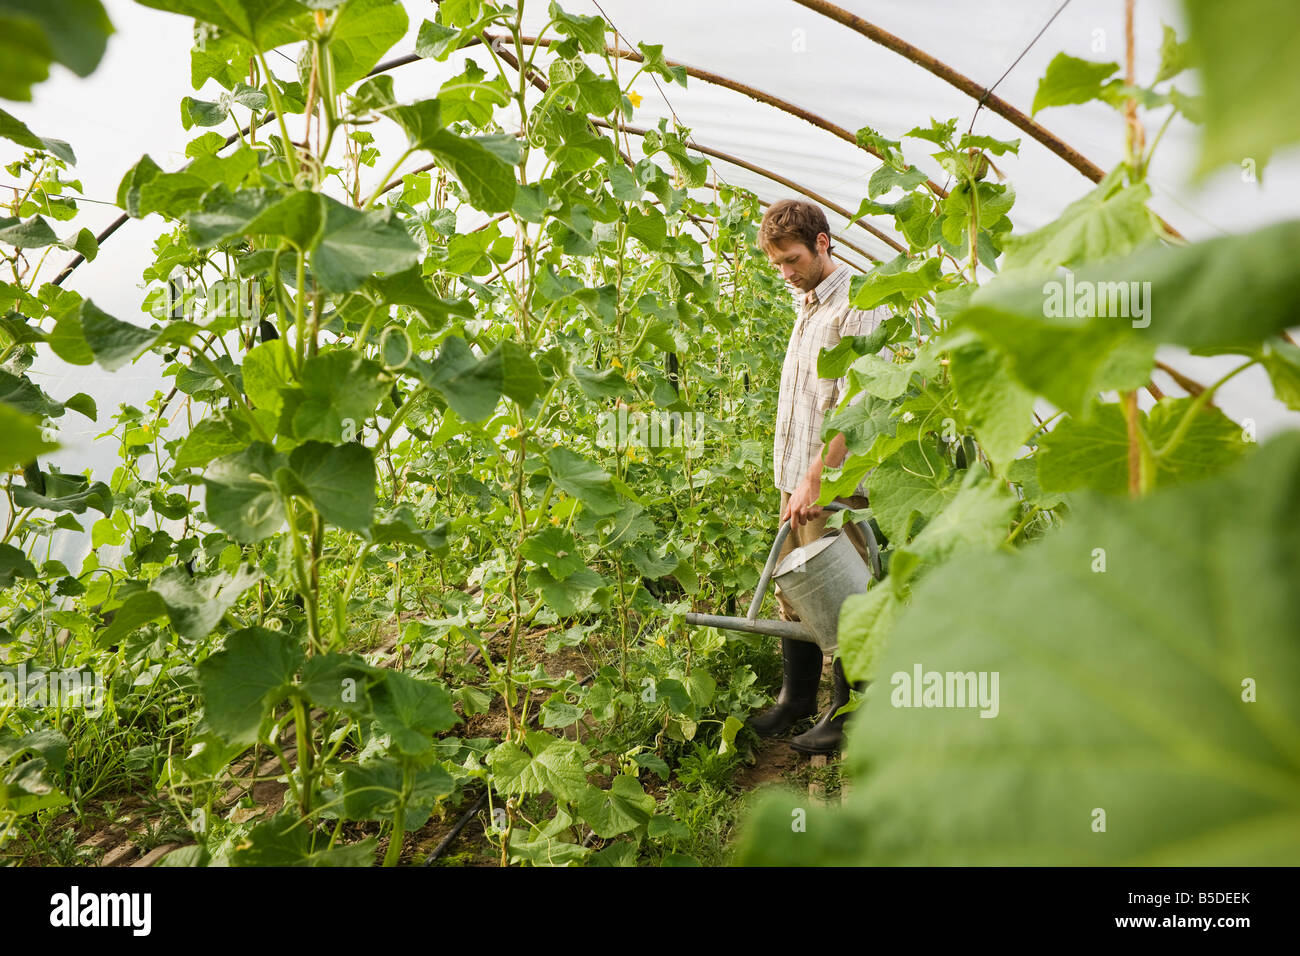 Man in greenhouse watering plants Stock Photo